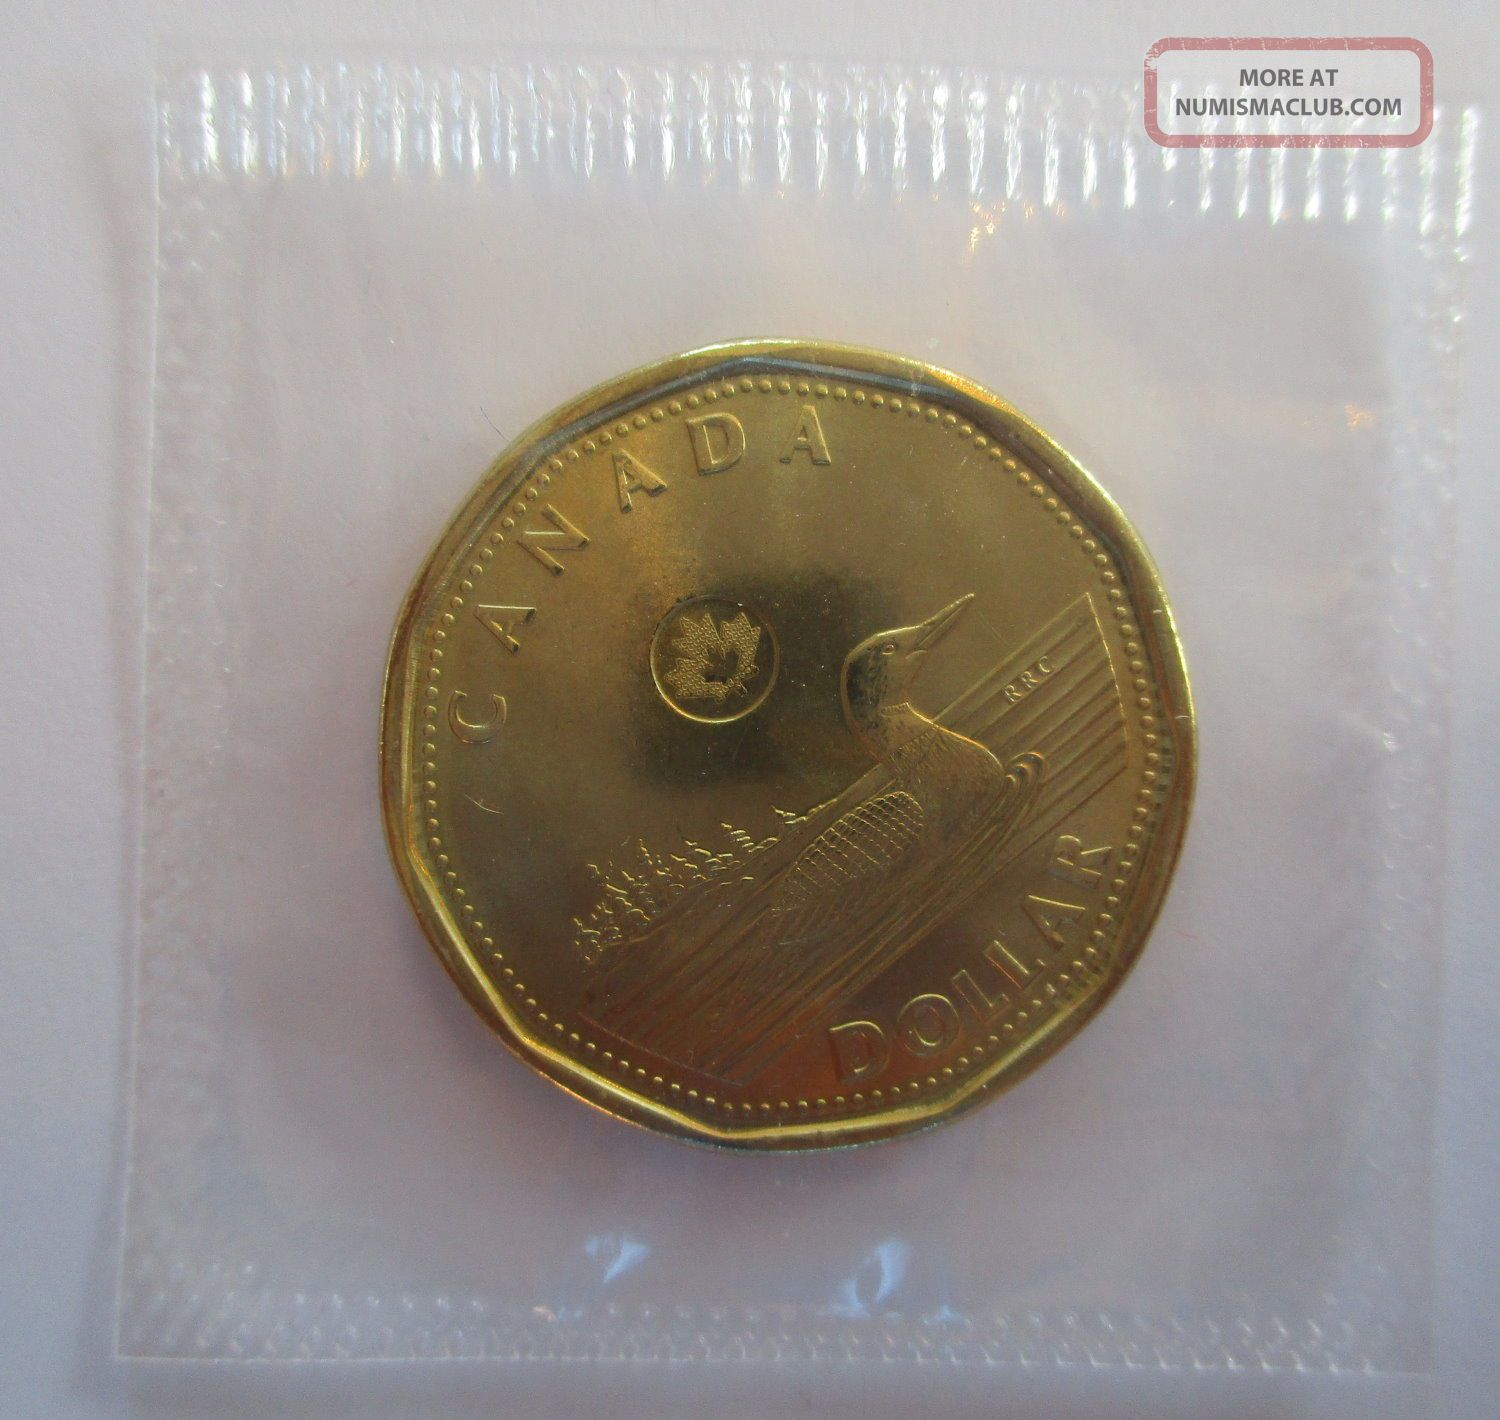 2017 Canada $1 Dollar Proof - Like Loonie Coin In Cello - B Coins: Canada photo